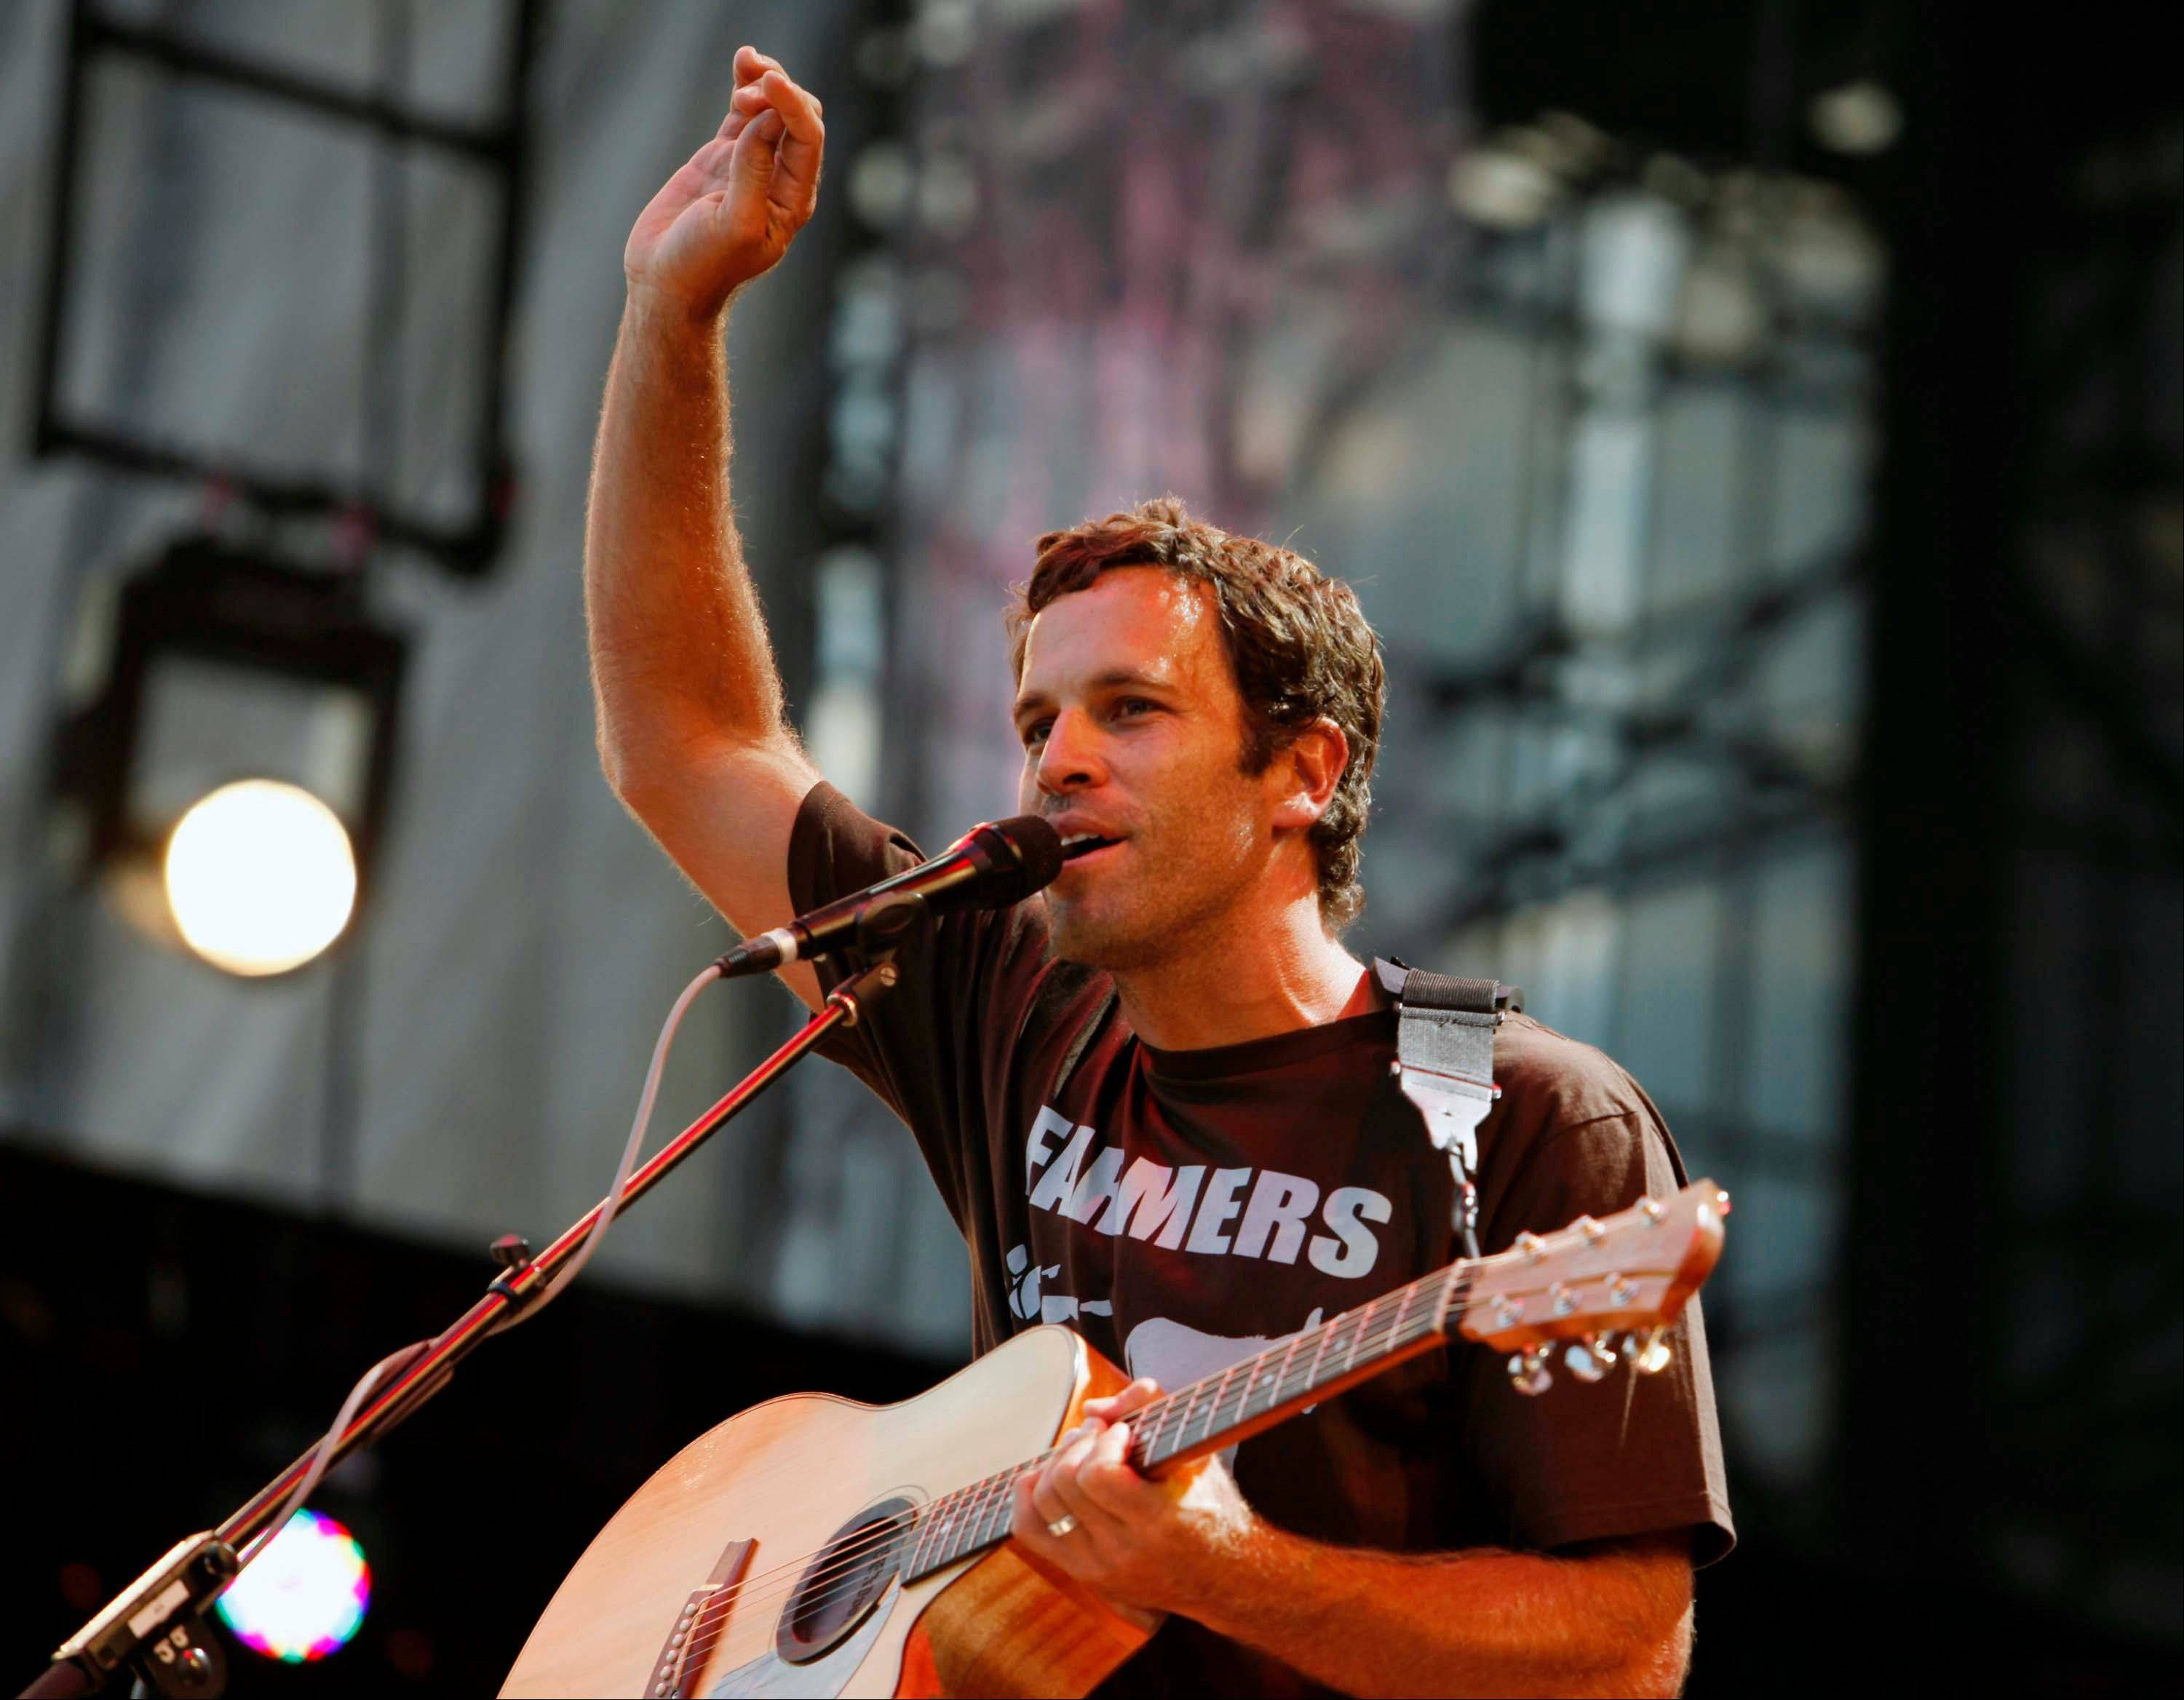 Jack Johnson has agreed to take the Saturday night headlining slot at the Bonnaroo Music & Arts Festival after Mumford & Sons were forced to cancel due to bassist Ted Dwane's illness.